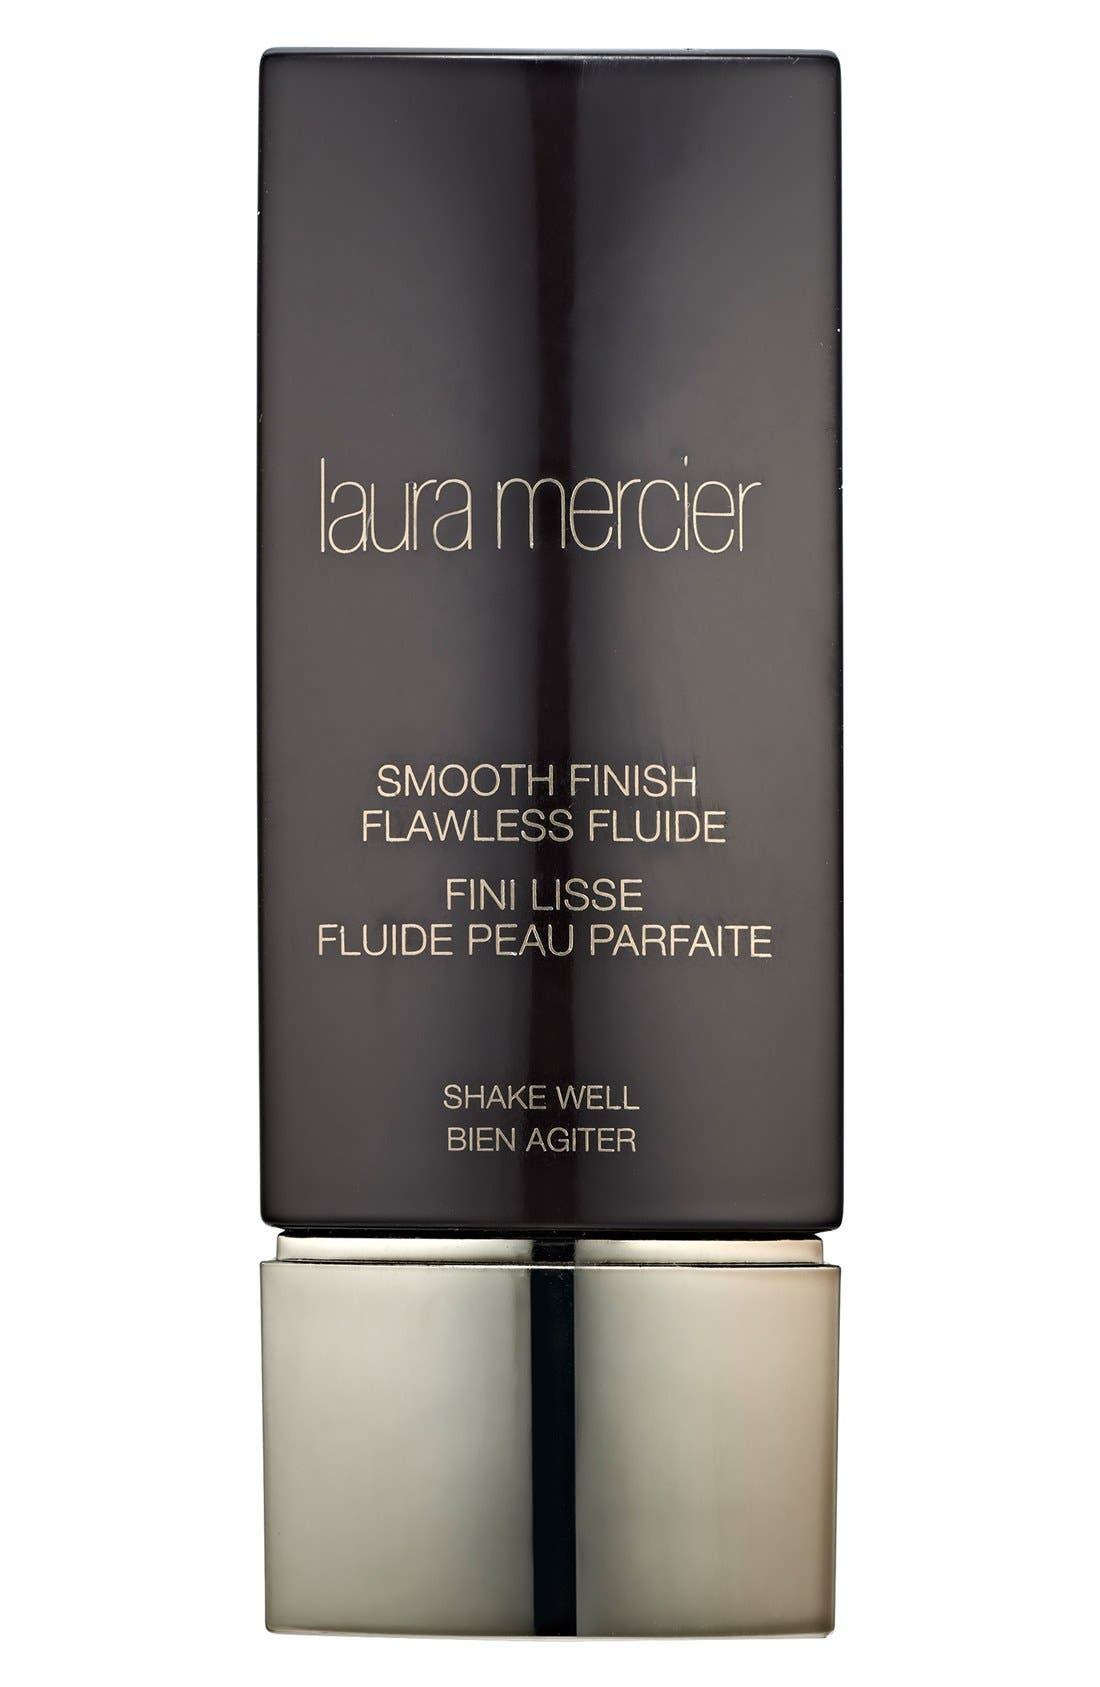 LAURA MERCIER, Smooth Finish Flawless Fluide Foundation, Main thumbnail 1, color, 100